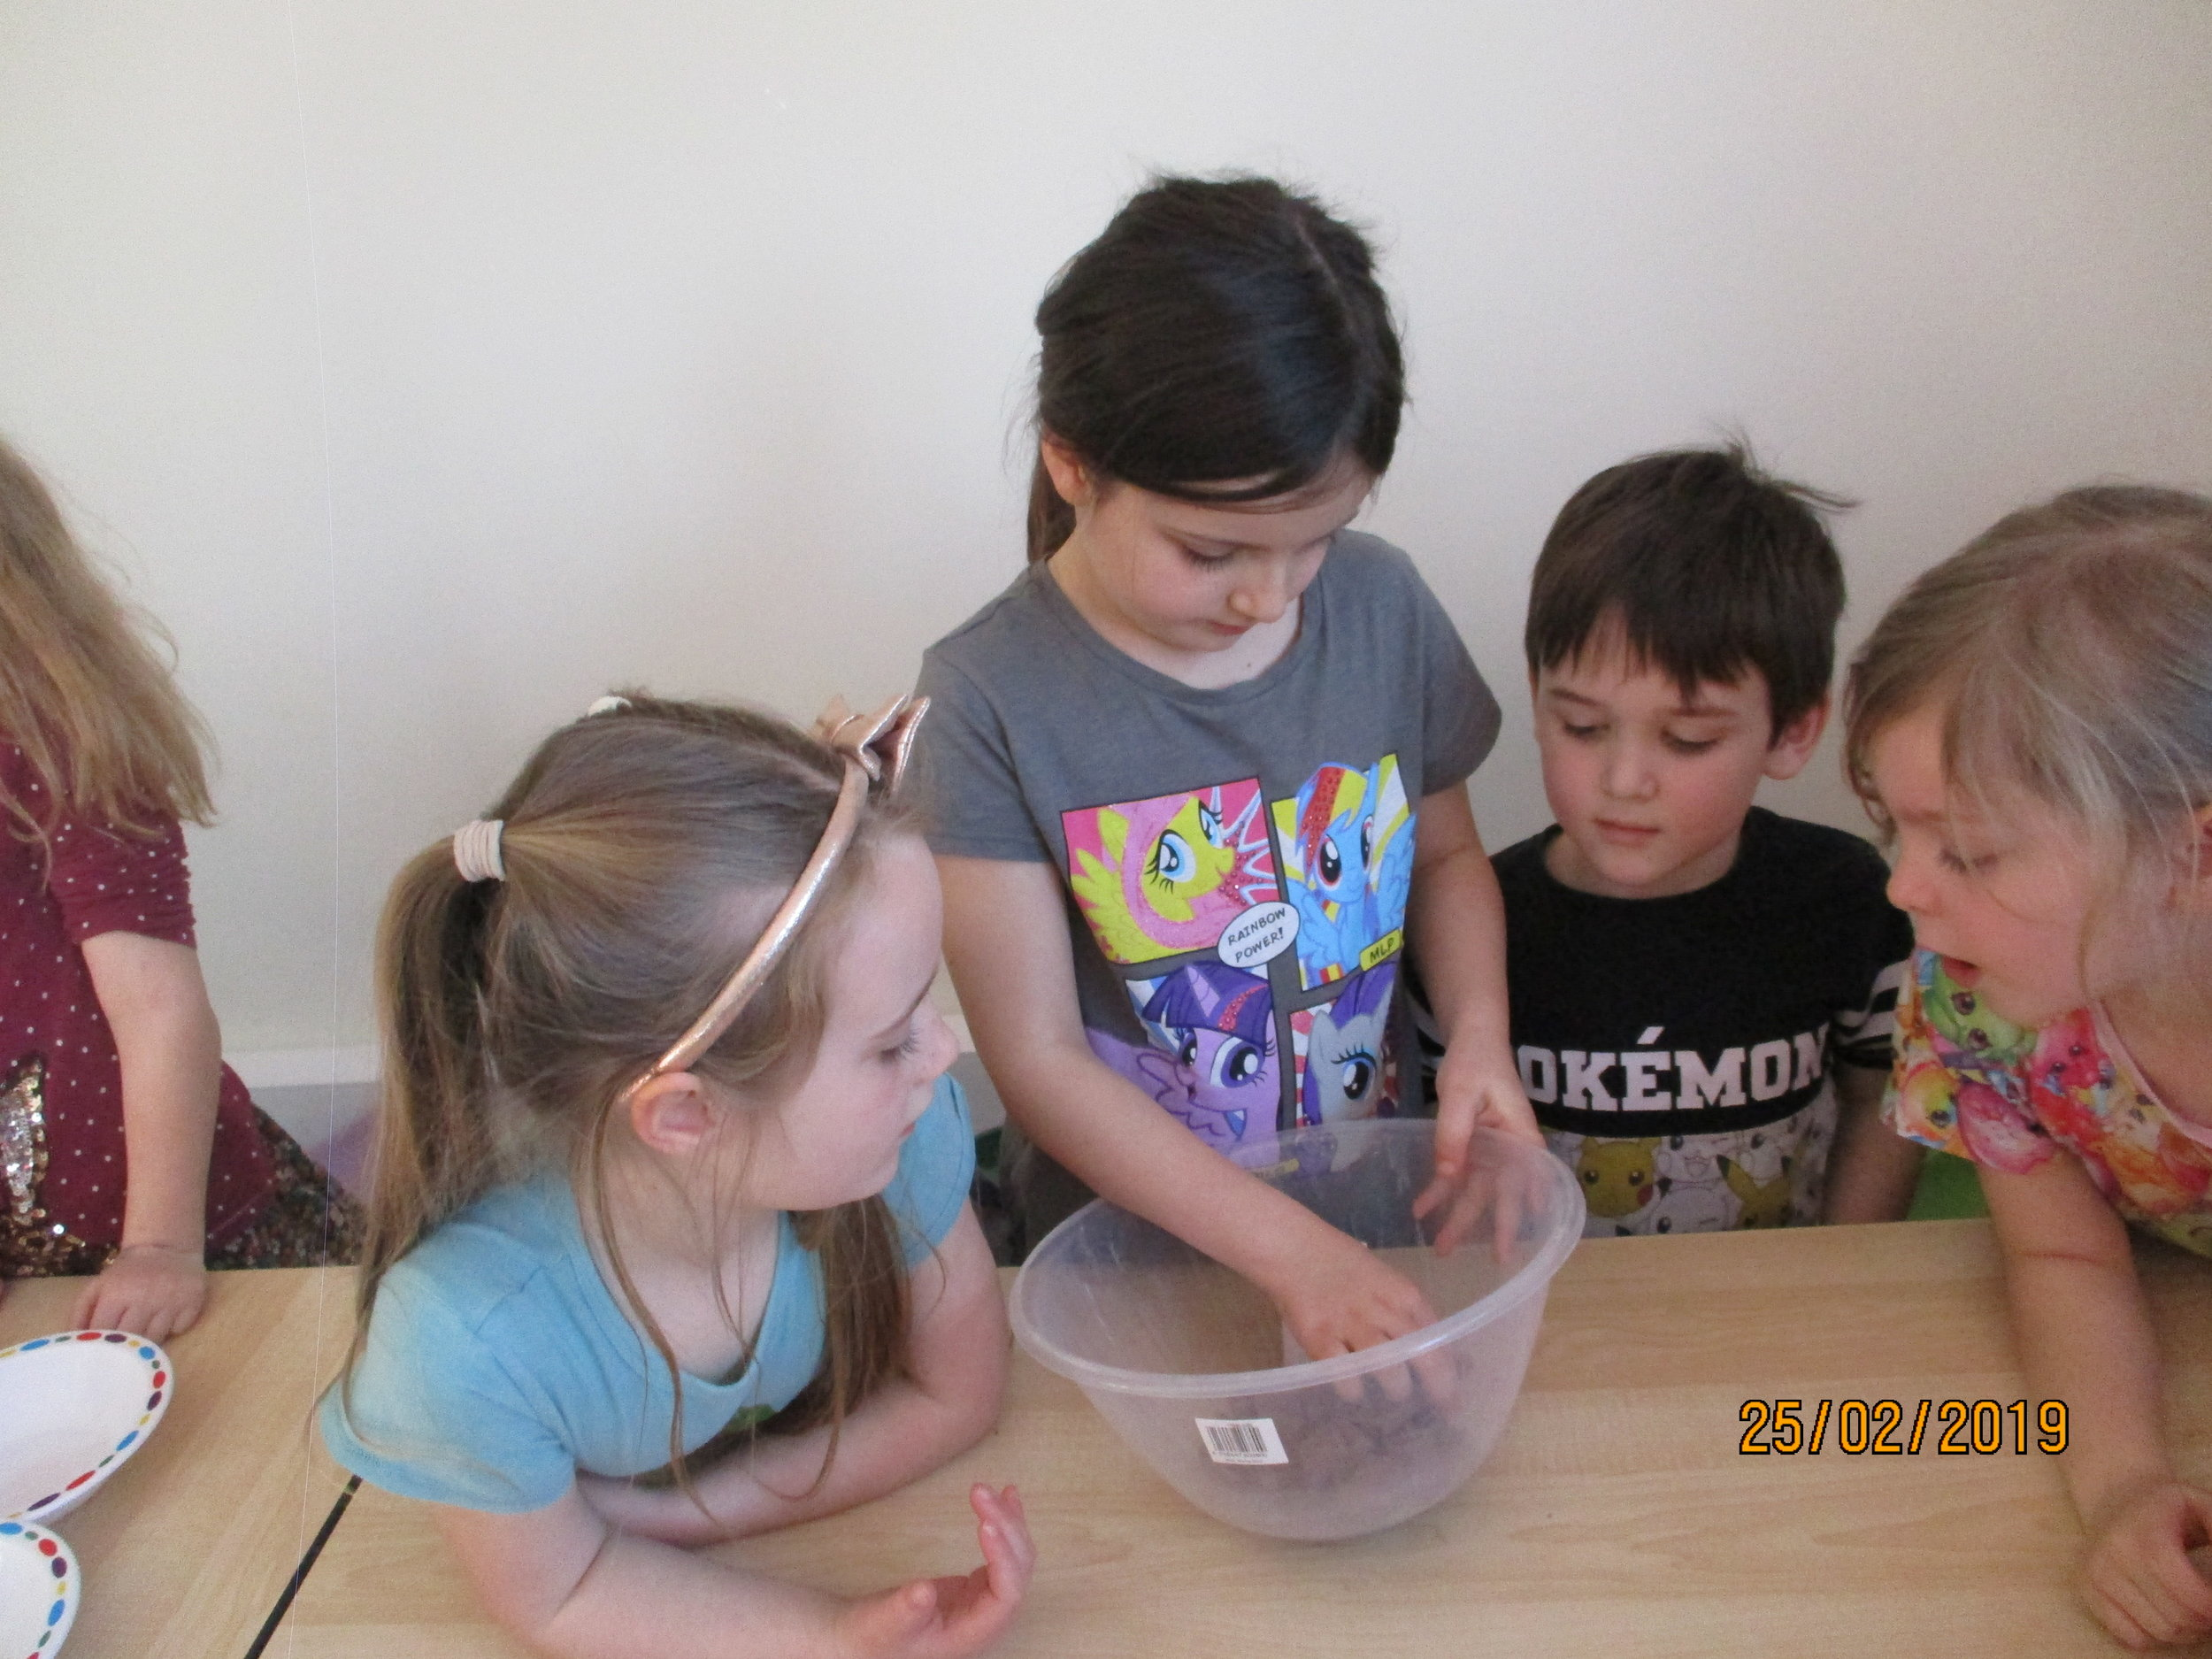 We explored where chocolate came from and worked together to make banana splits with Fair-trade chocolate and bananas. We then wrote up some very clear instructions so our parents could make them with us too!